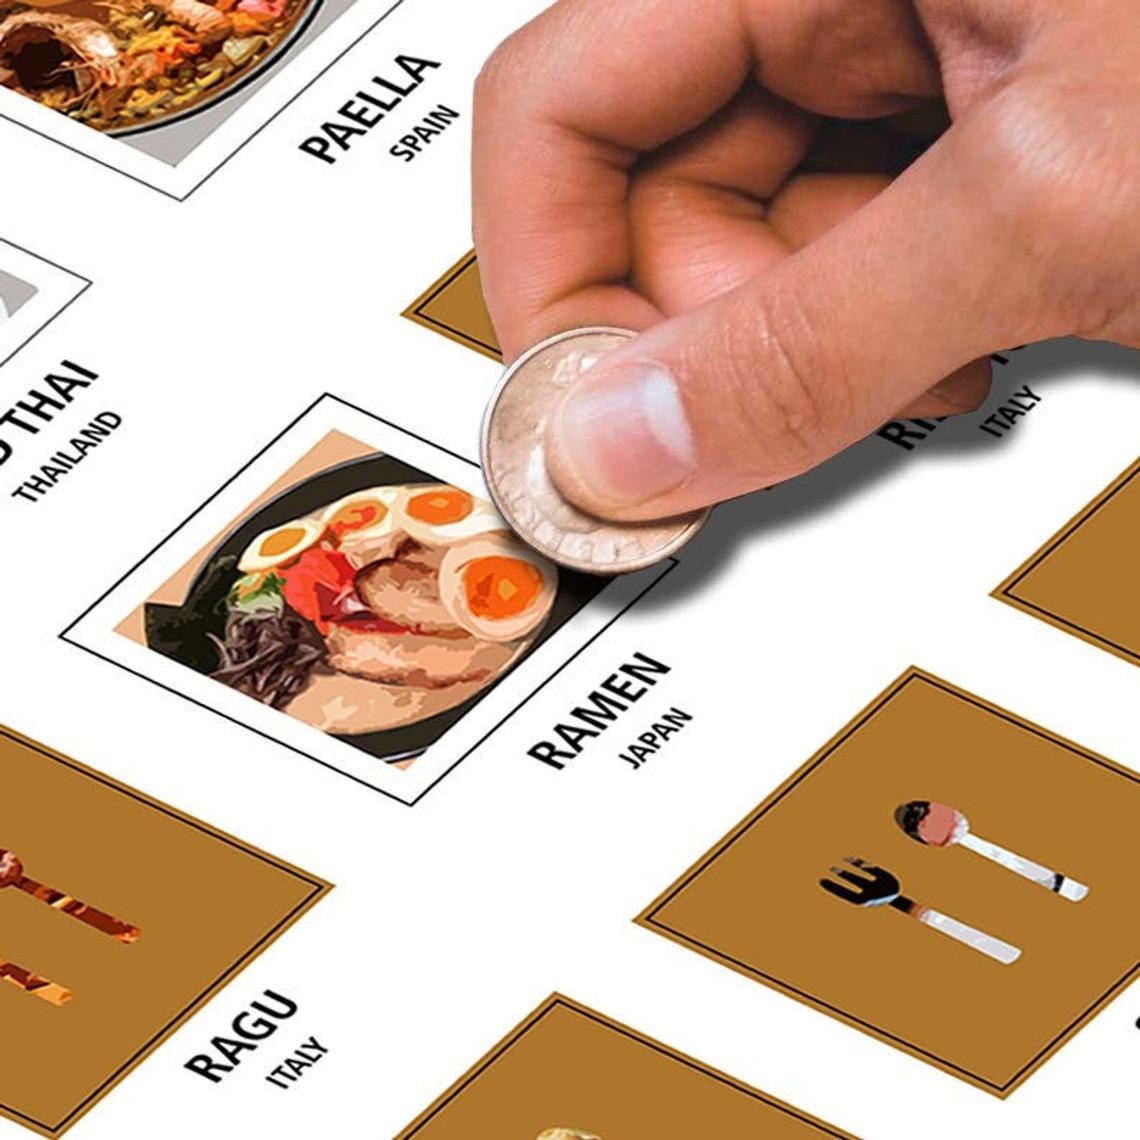 scratch off poster with someone scratching off the ramen square